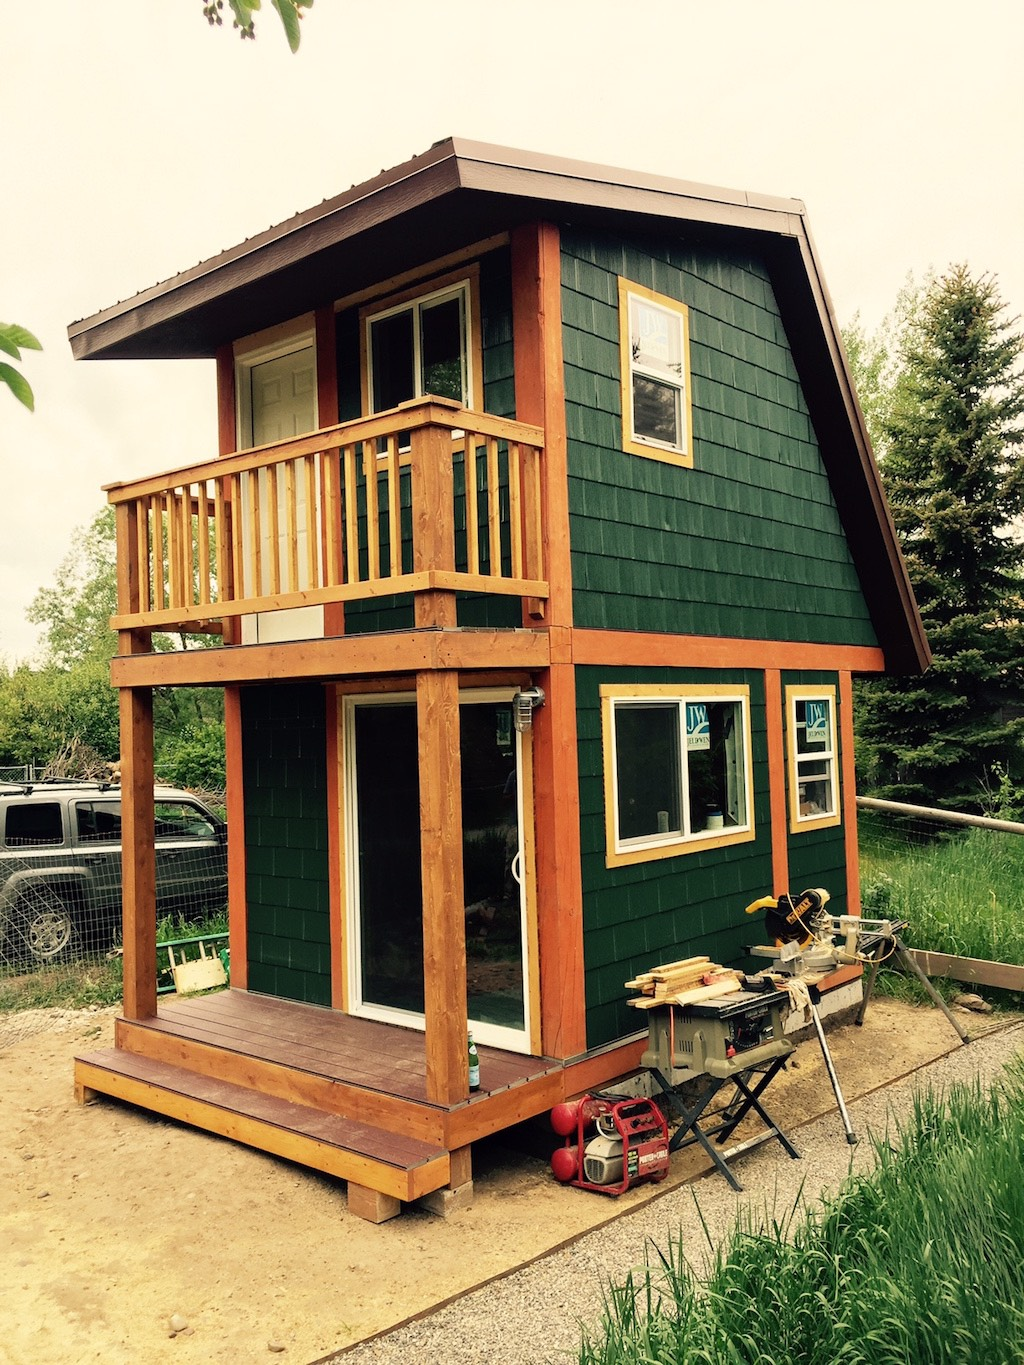 Ceramic studio tiny house swoon for Small two story house